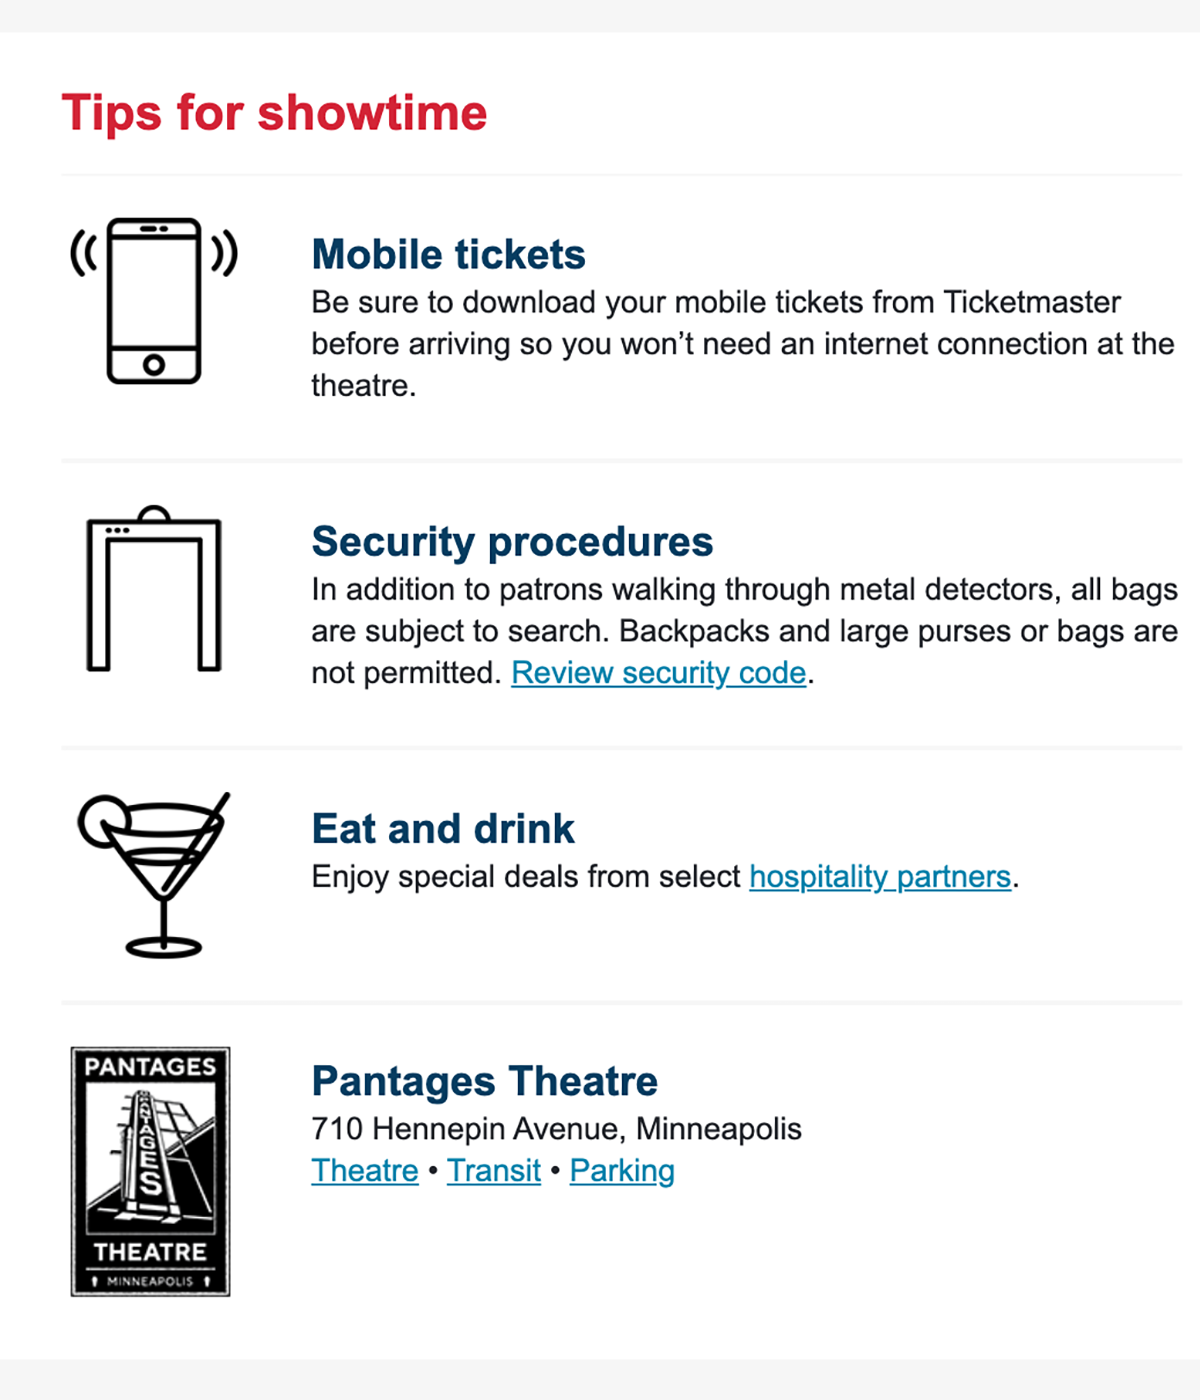 Tips for showtime